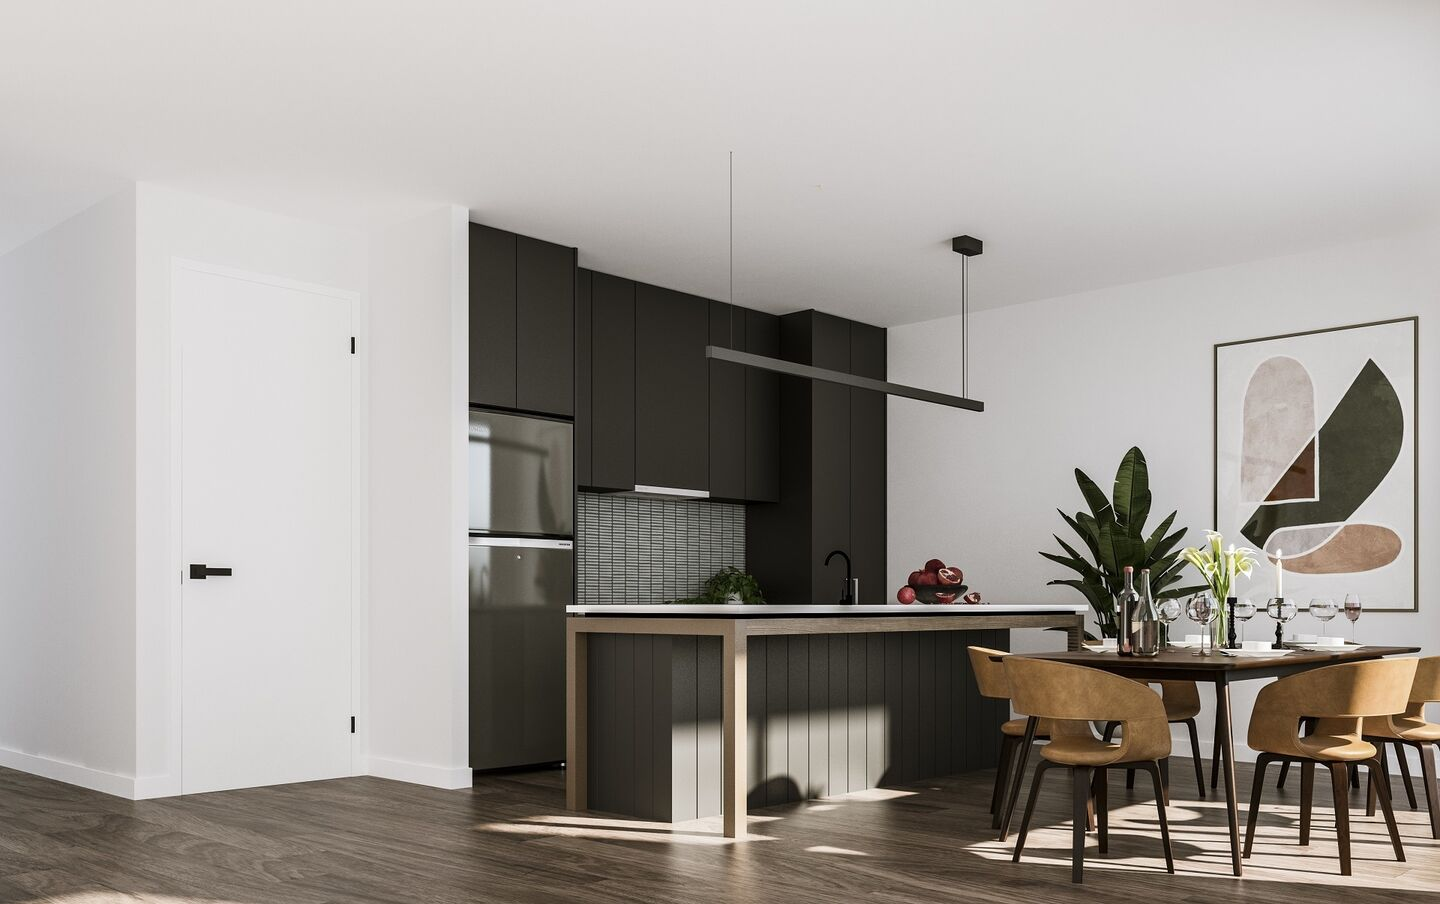 The Heggaton Kitchen Dark Scheme